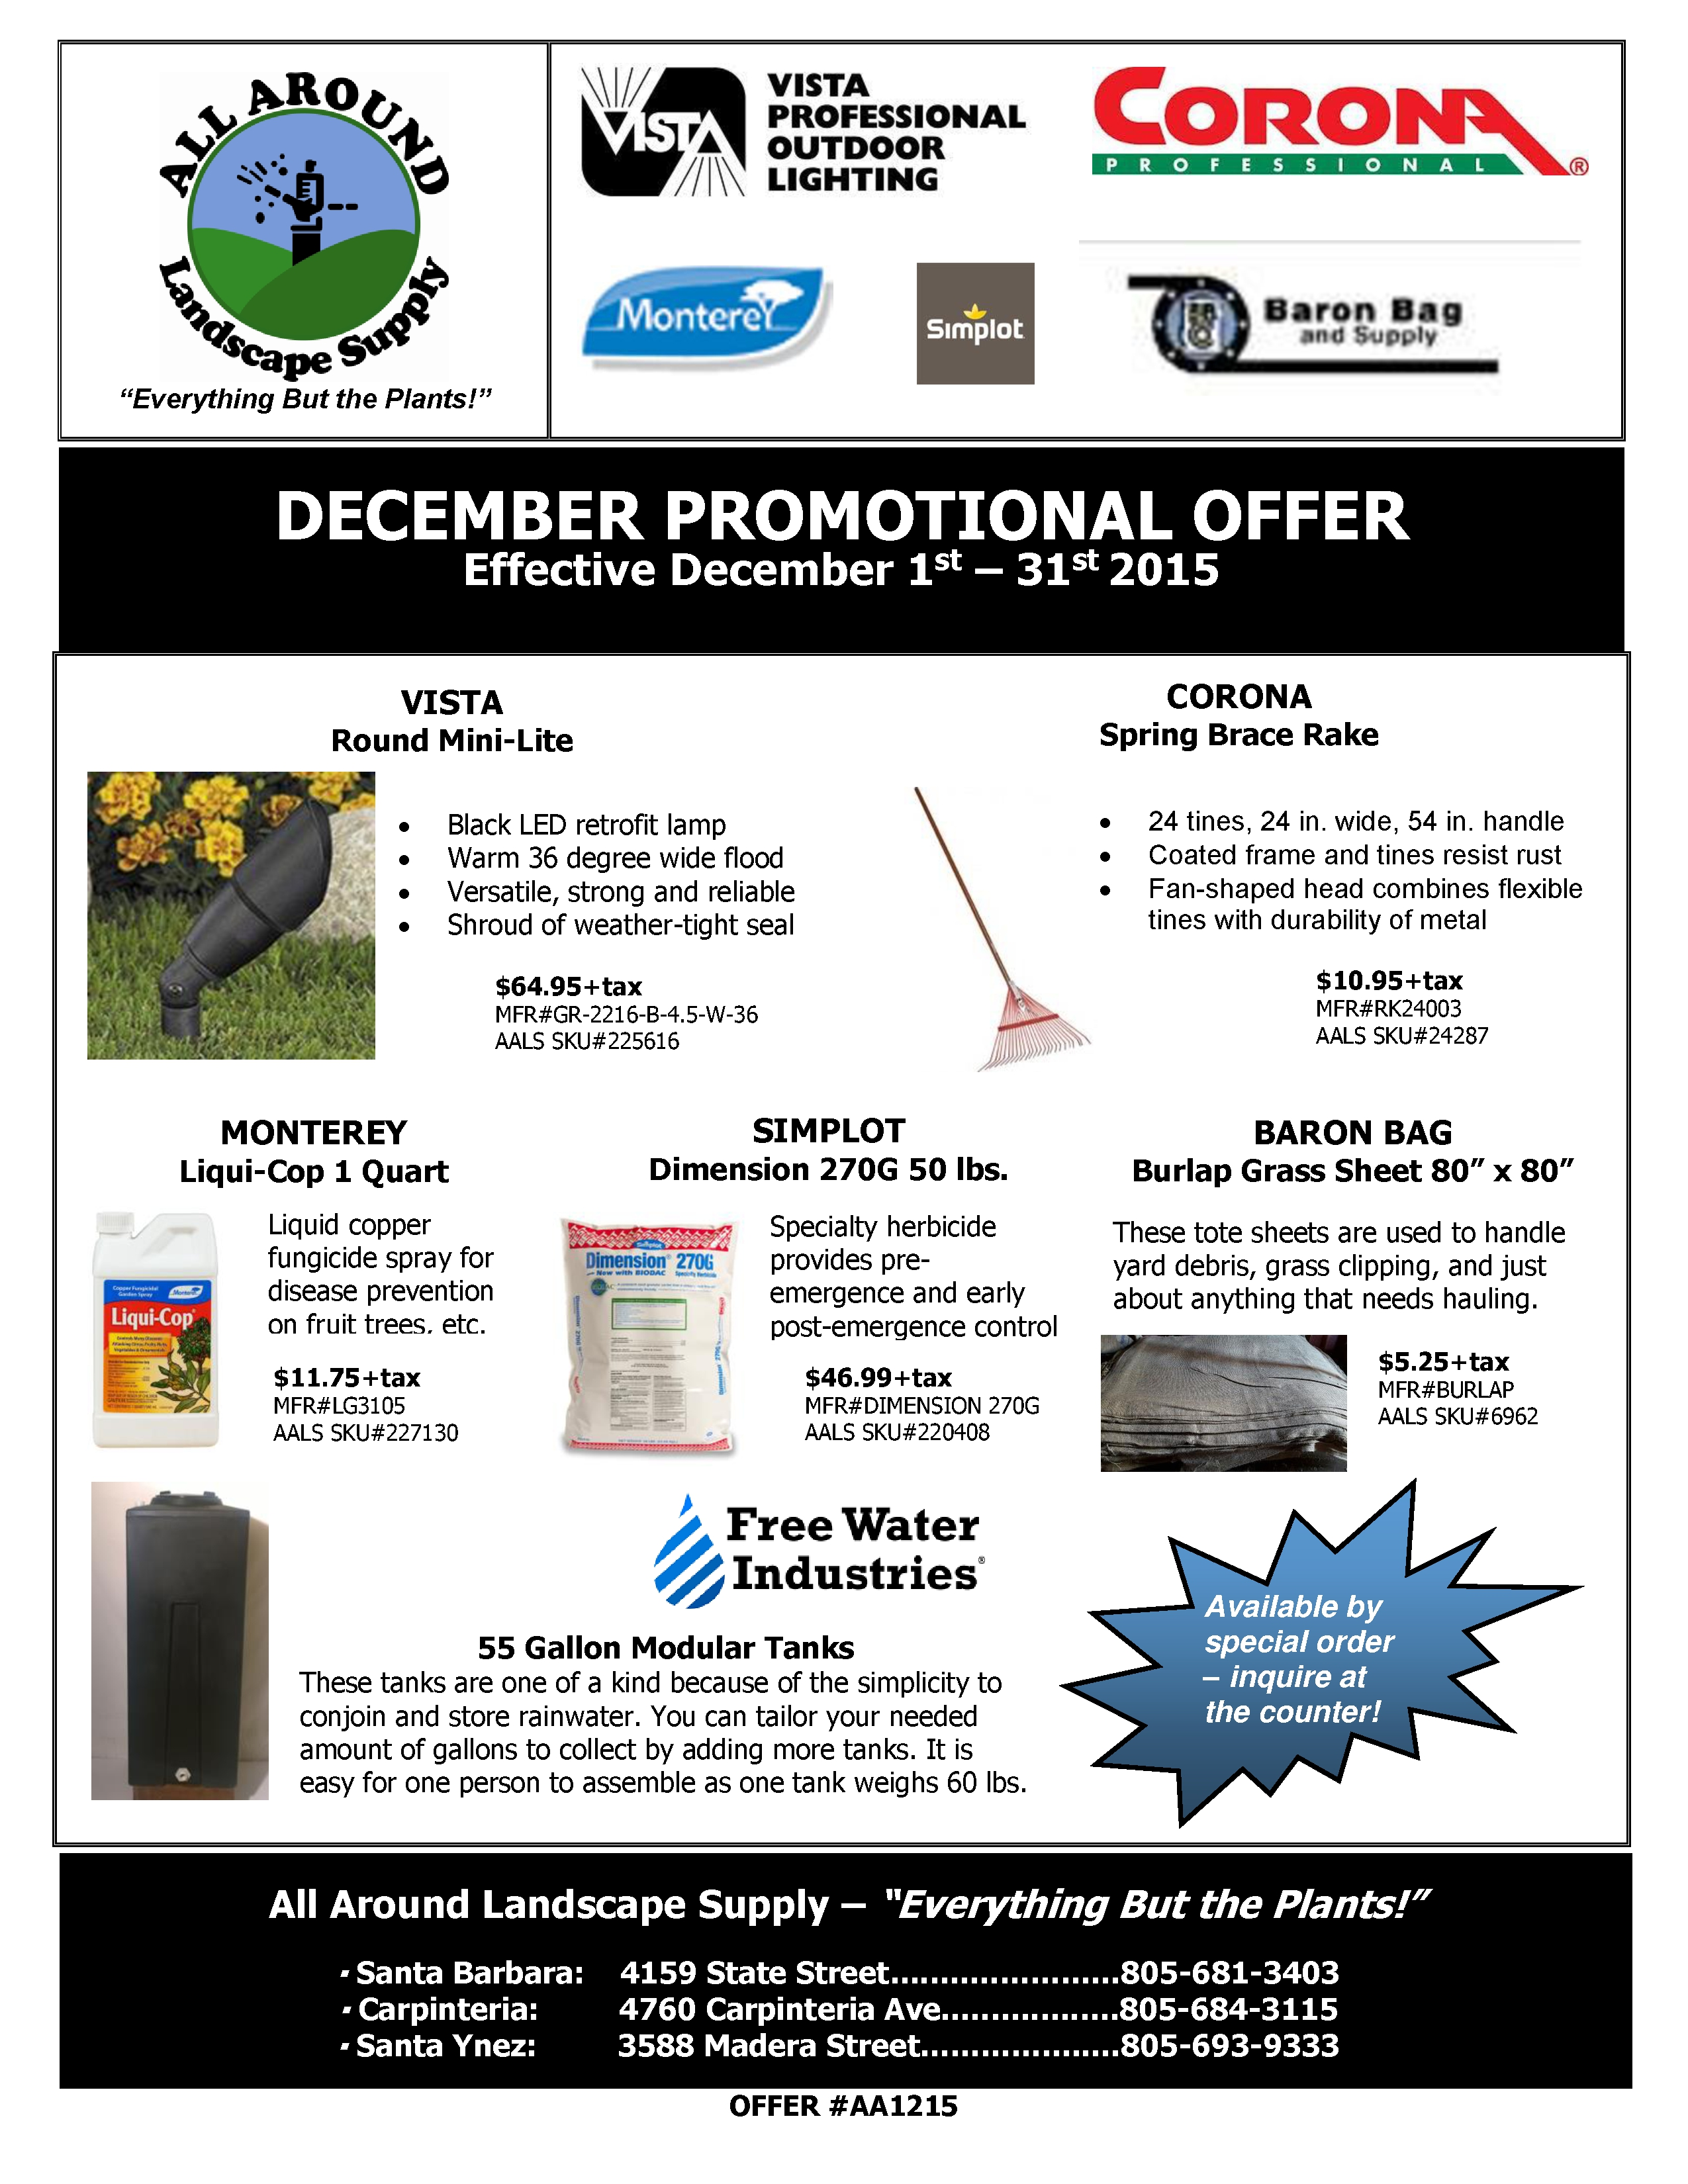 All Around Landscape Decemer 2015 Promotions